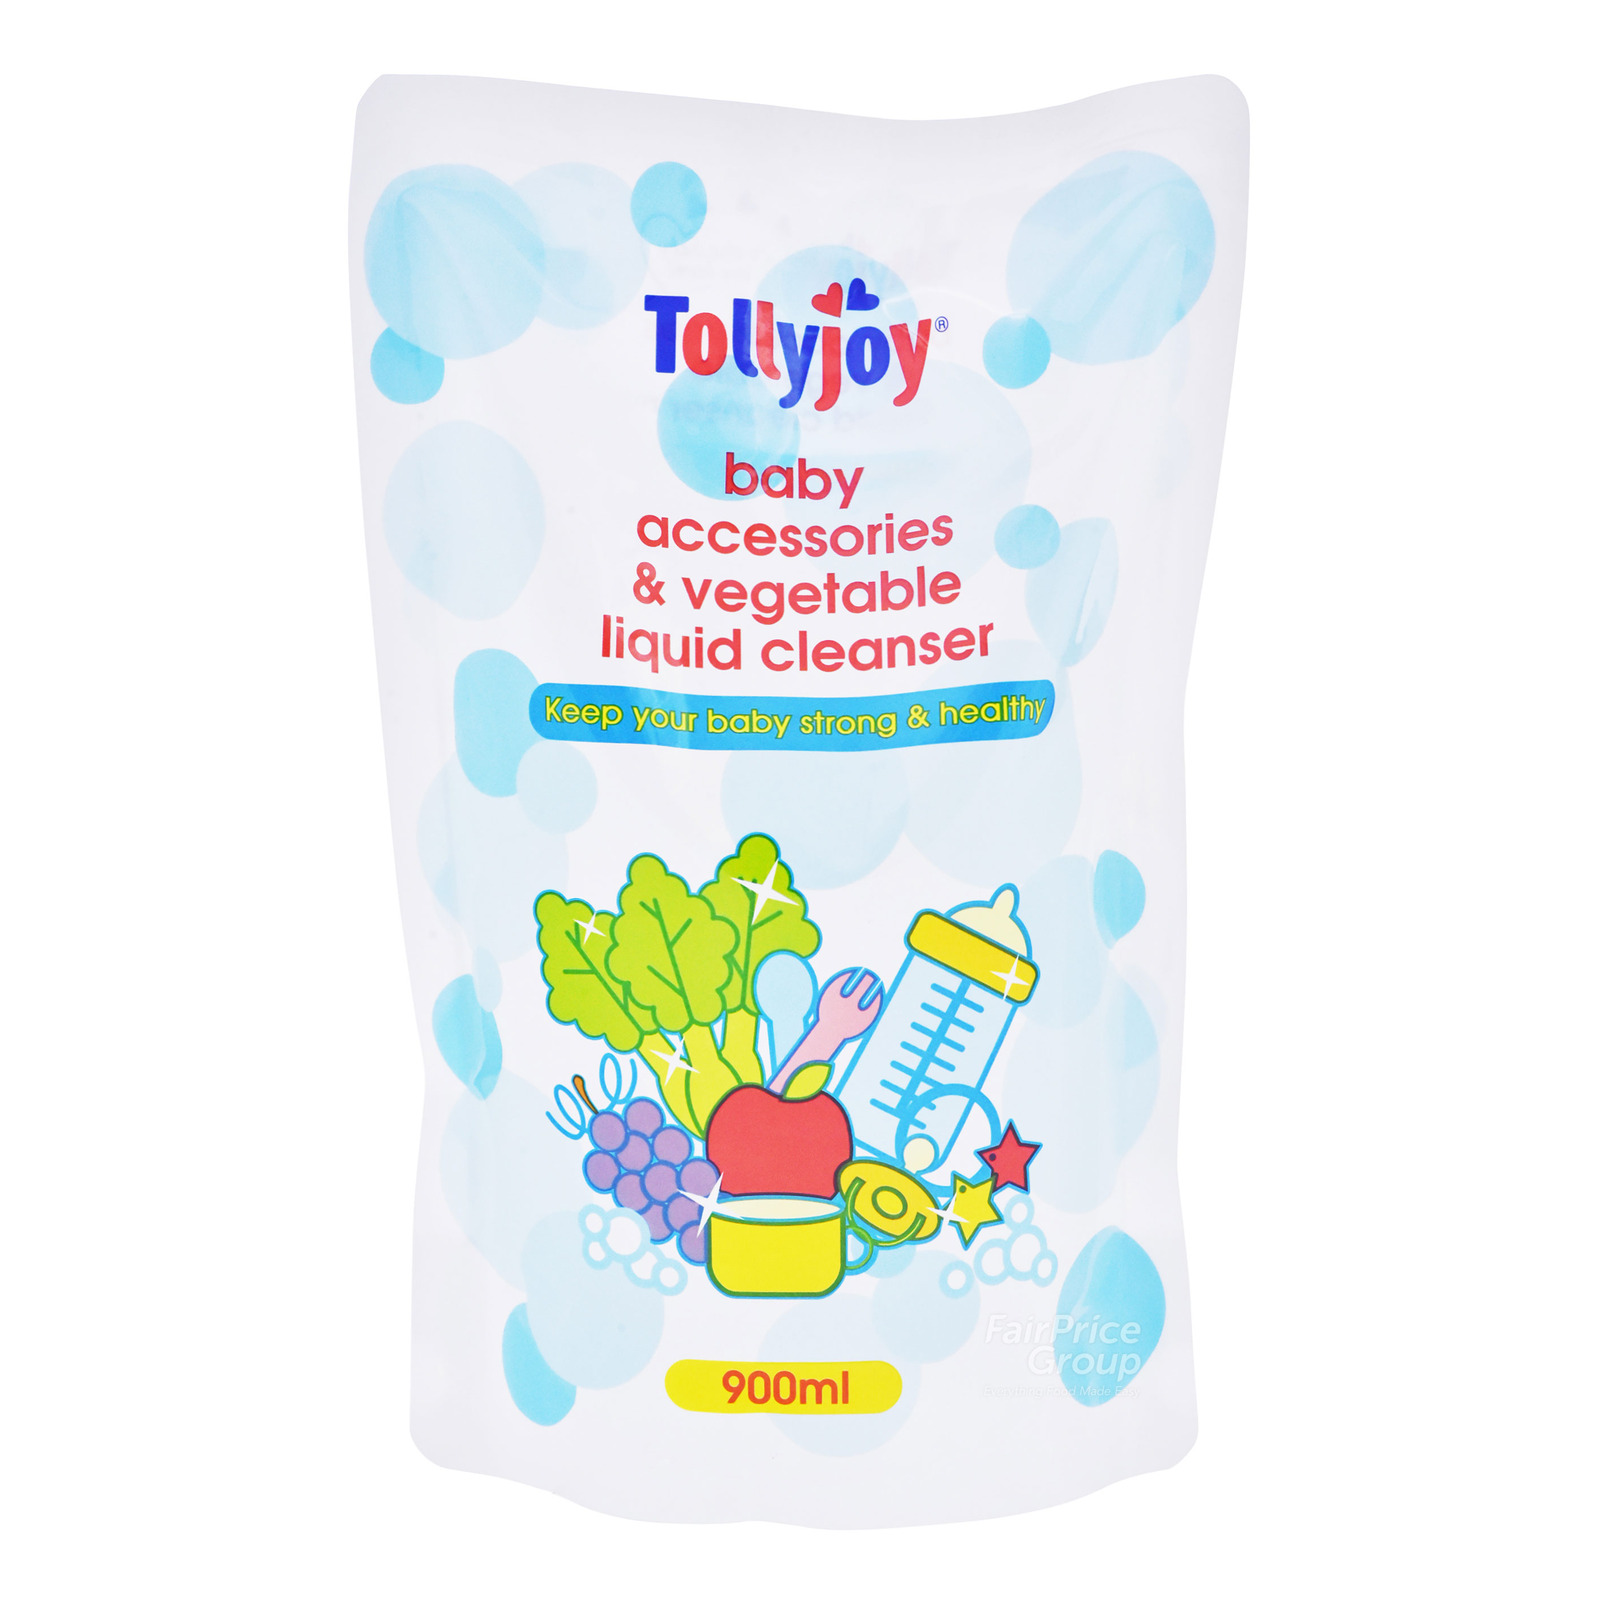 Tollyjoy Baby Liquid Cleanser Refill - Accessories & Vegetable